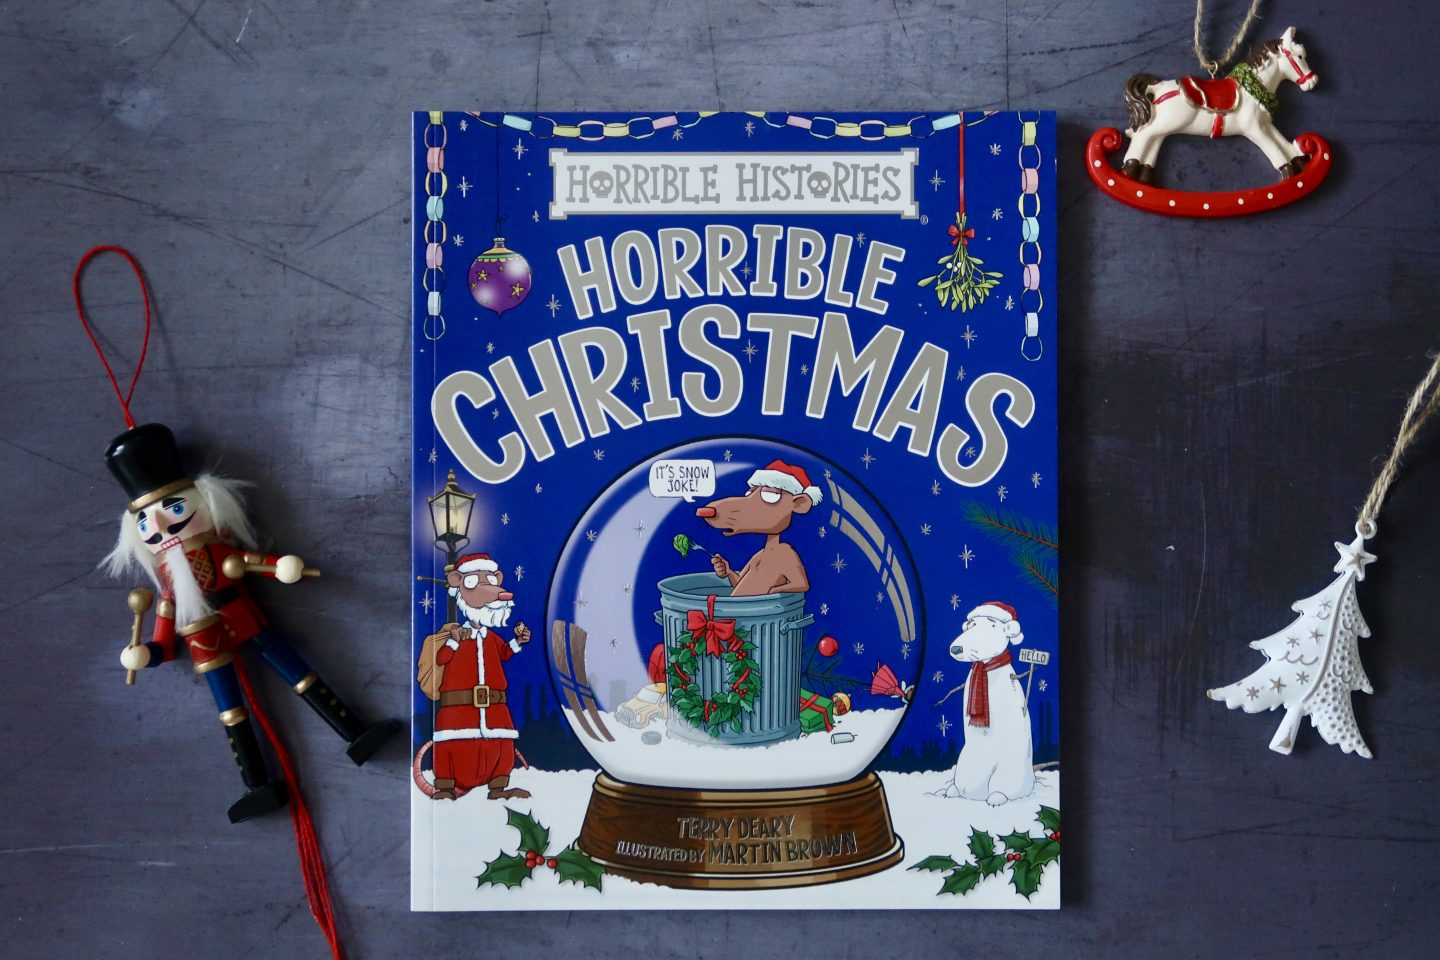 A blue book with Horrible Christmas written on it, along with a picture of a reindeer in a snow globe, a cartoon snowman and santa. Around the book are Christmas decorations